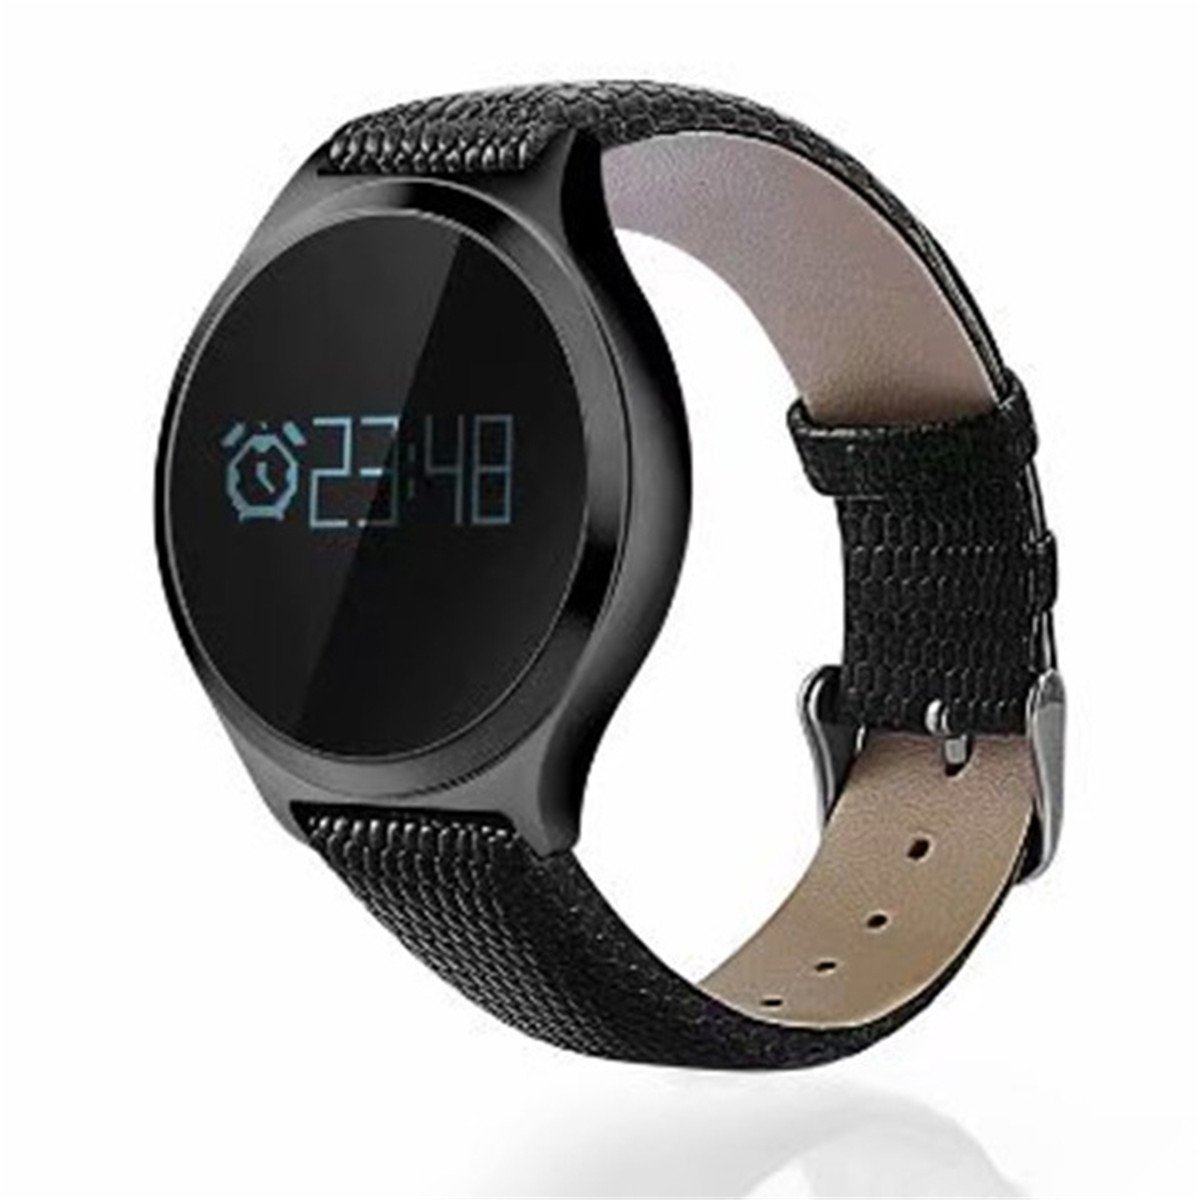 Amazon.com: Fitness Tracker,SZHAIYU Smart Watch Blood ...